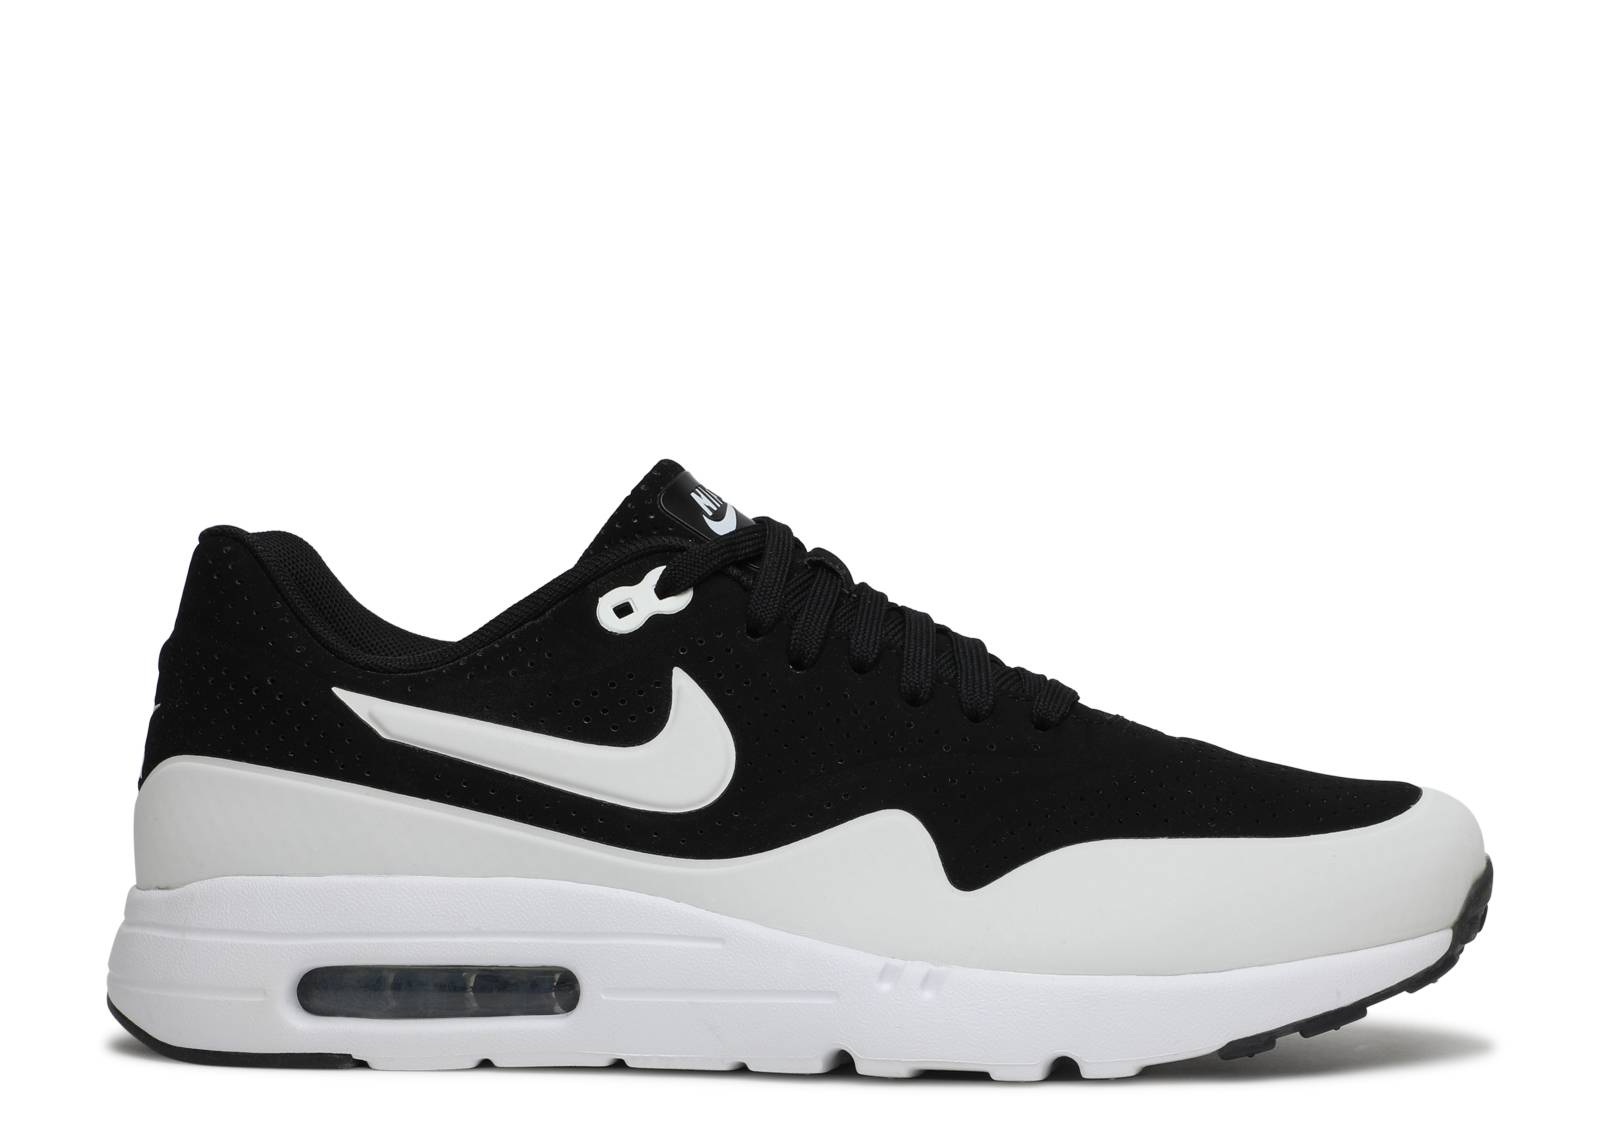 air max 1 ultra moire black white black. Black Bedroom Furniture Sets. Home Design Ideas